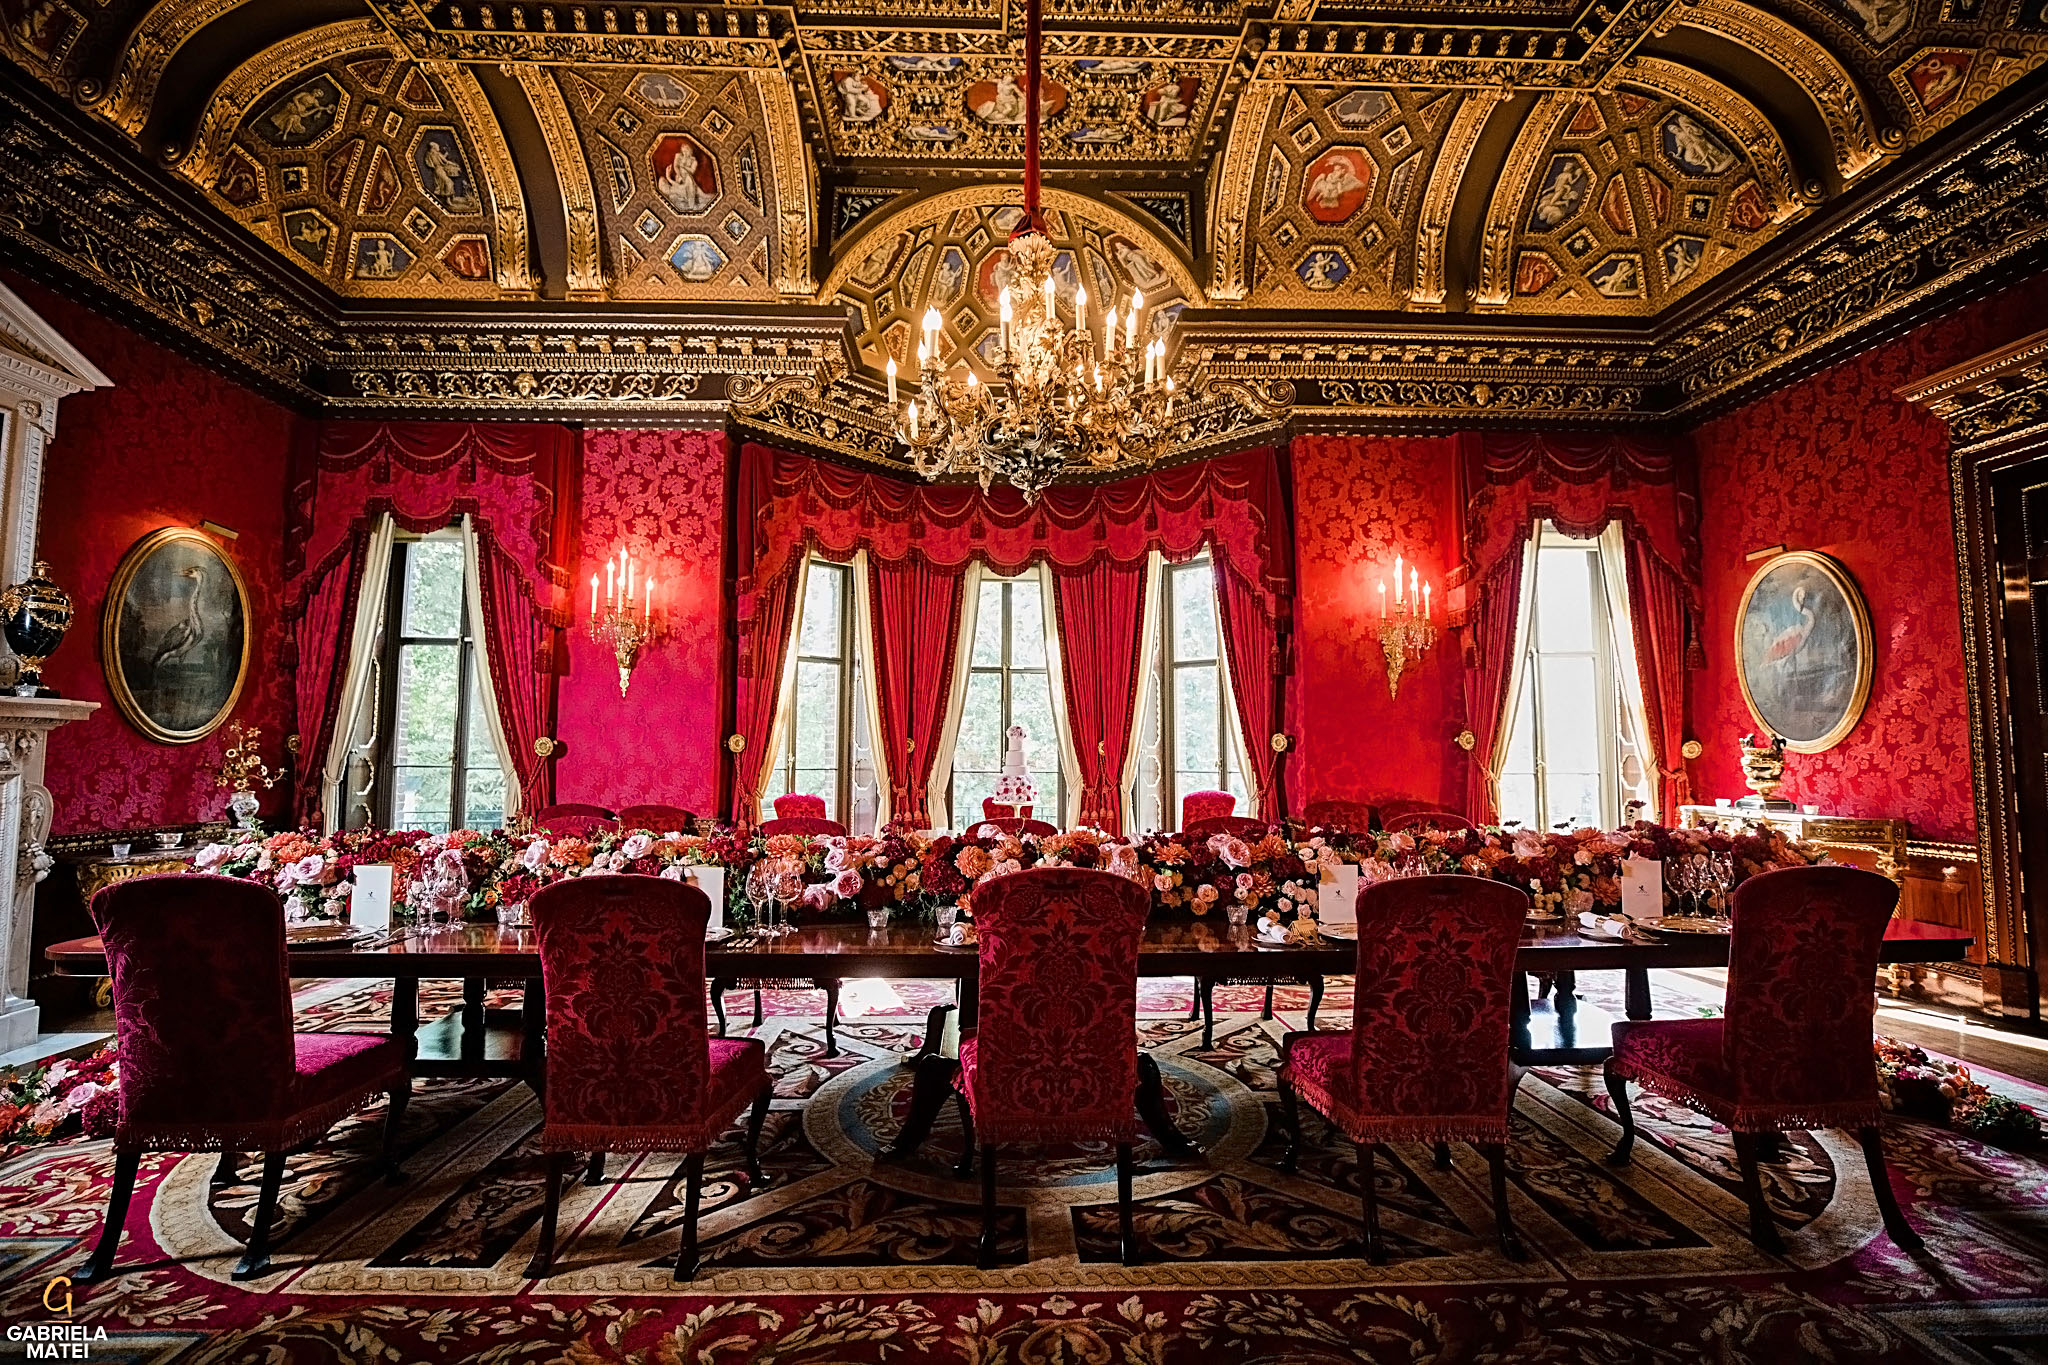 Breathtaking wedding wedding decor in William Kent Room at The Ritz London